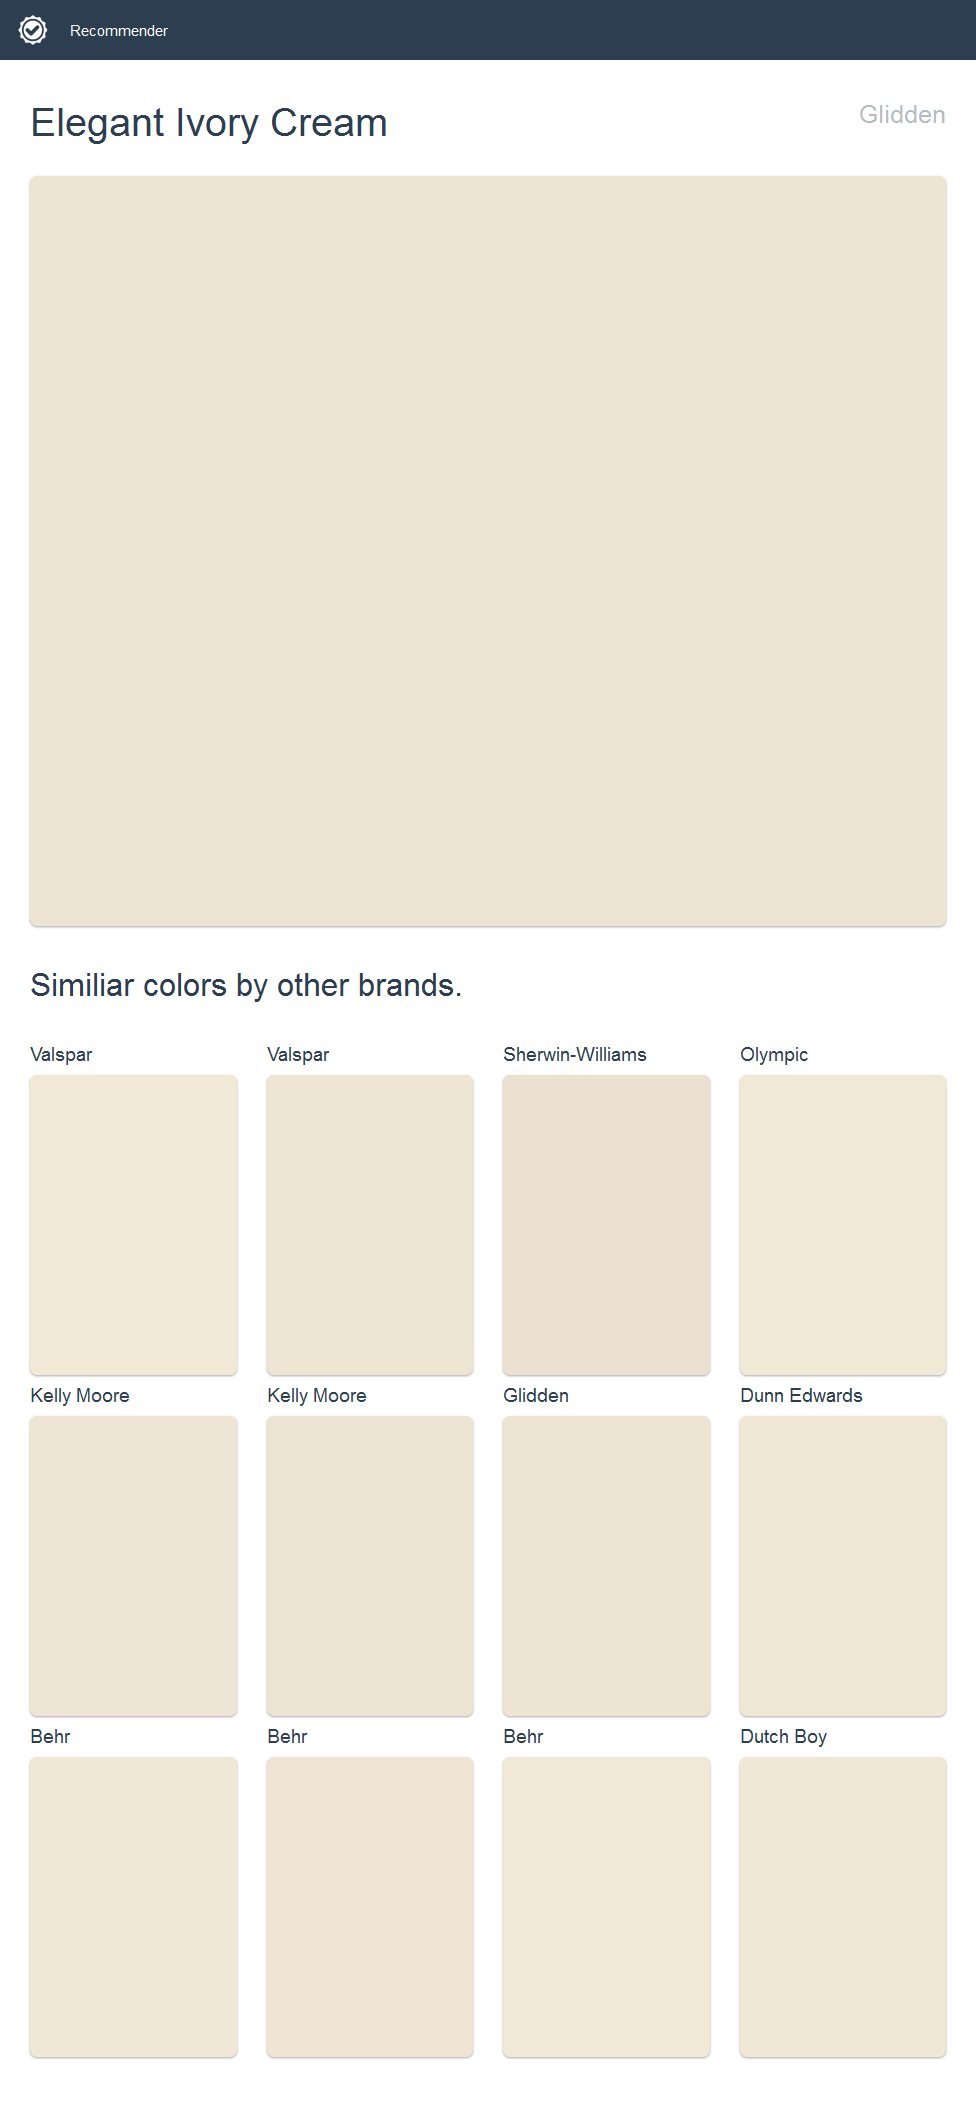 Elegant Ivory Cream Glidden Click The Image To See Similiar Colors By Other Brands